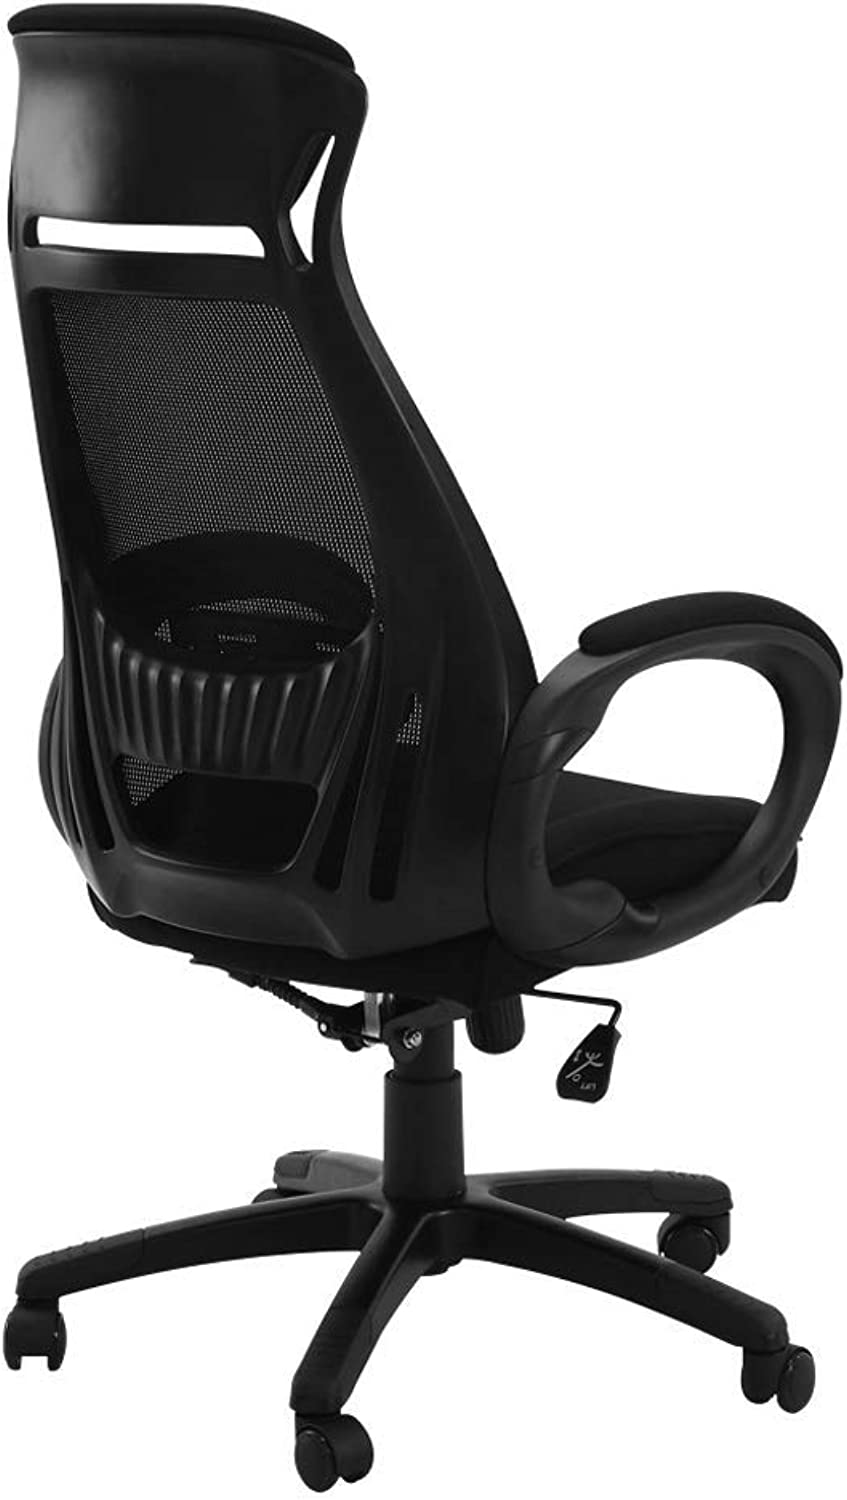 Office Chair, High Back Large Seat and Ergonomic Swivel Chair Reclining Computer Desk Chair Breathable Mesh R08